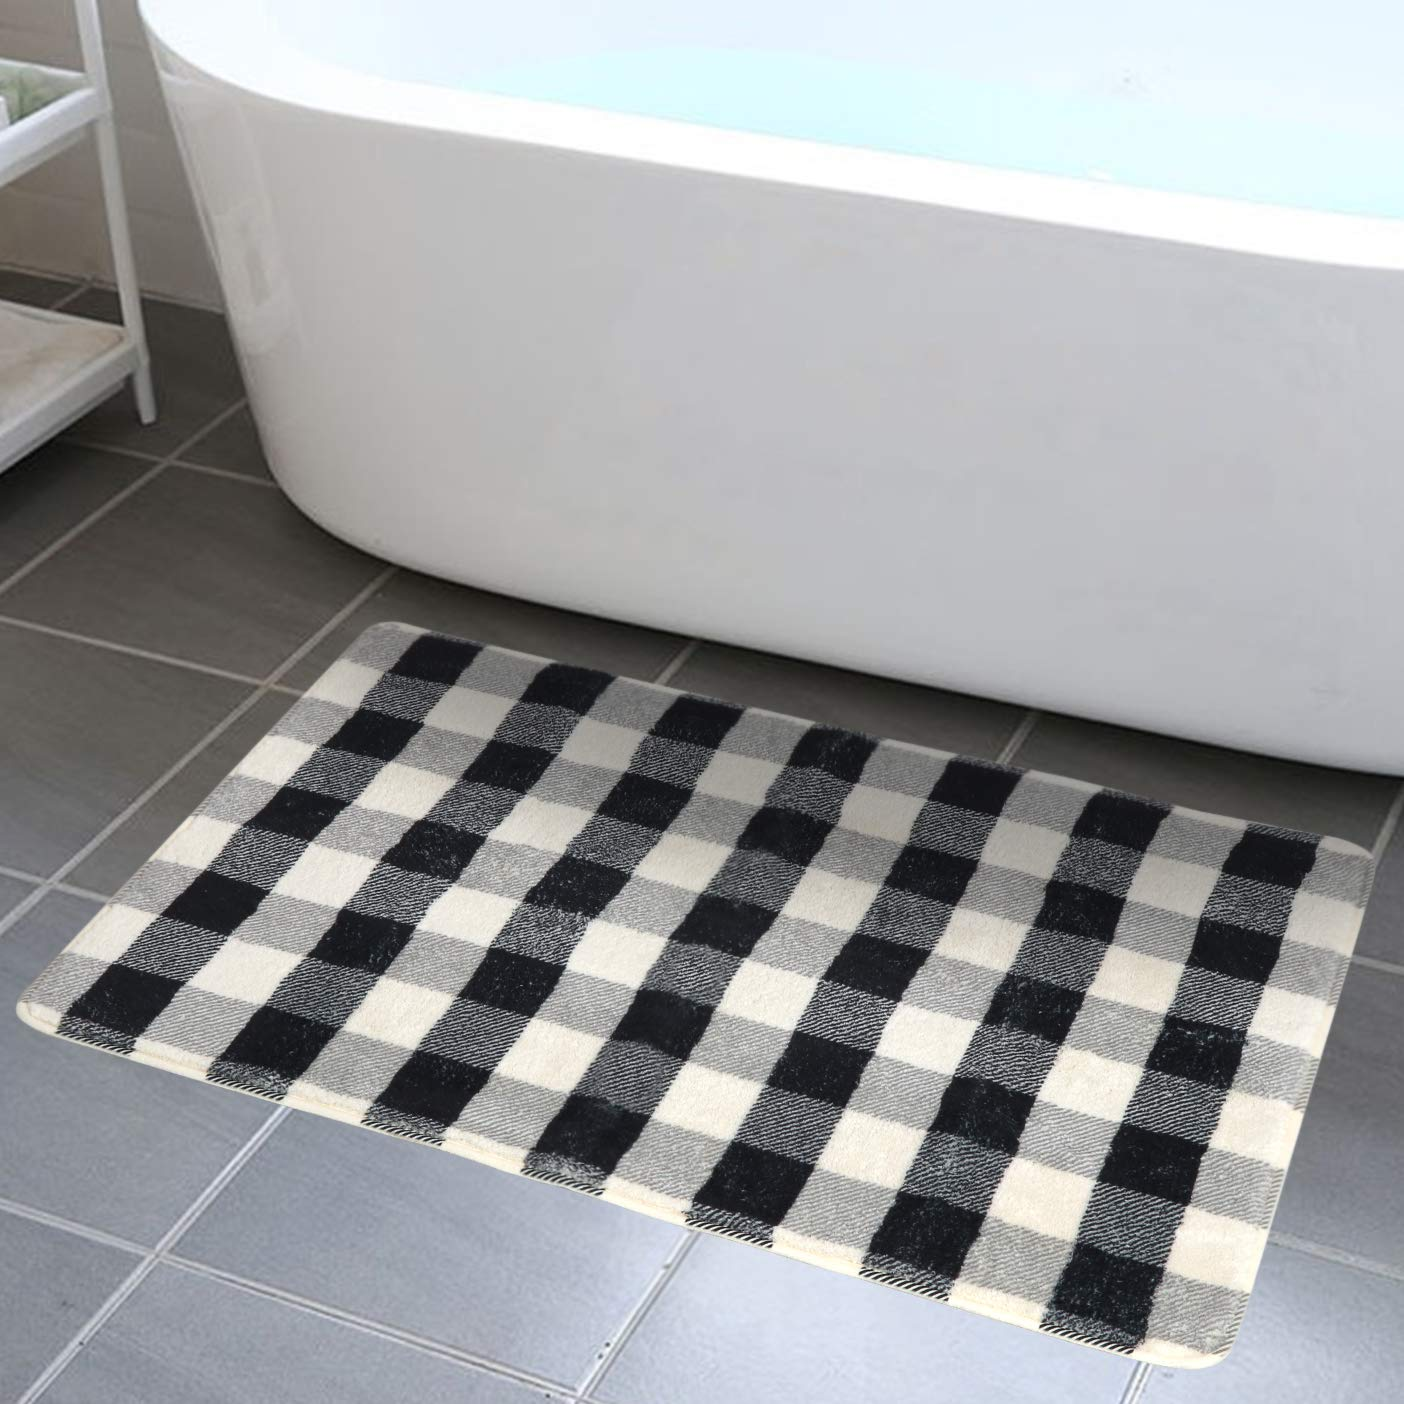 HAOCOO Bathroom Rugs 18x25 inch Black and White Buffalo Check Faux Wool Bath Mat Non-Slip Door Carpet Soft Luxury Microfiber Machine-Washable Floor Rug for Doormats Tub Shower